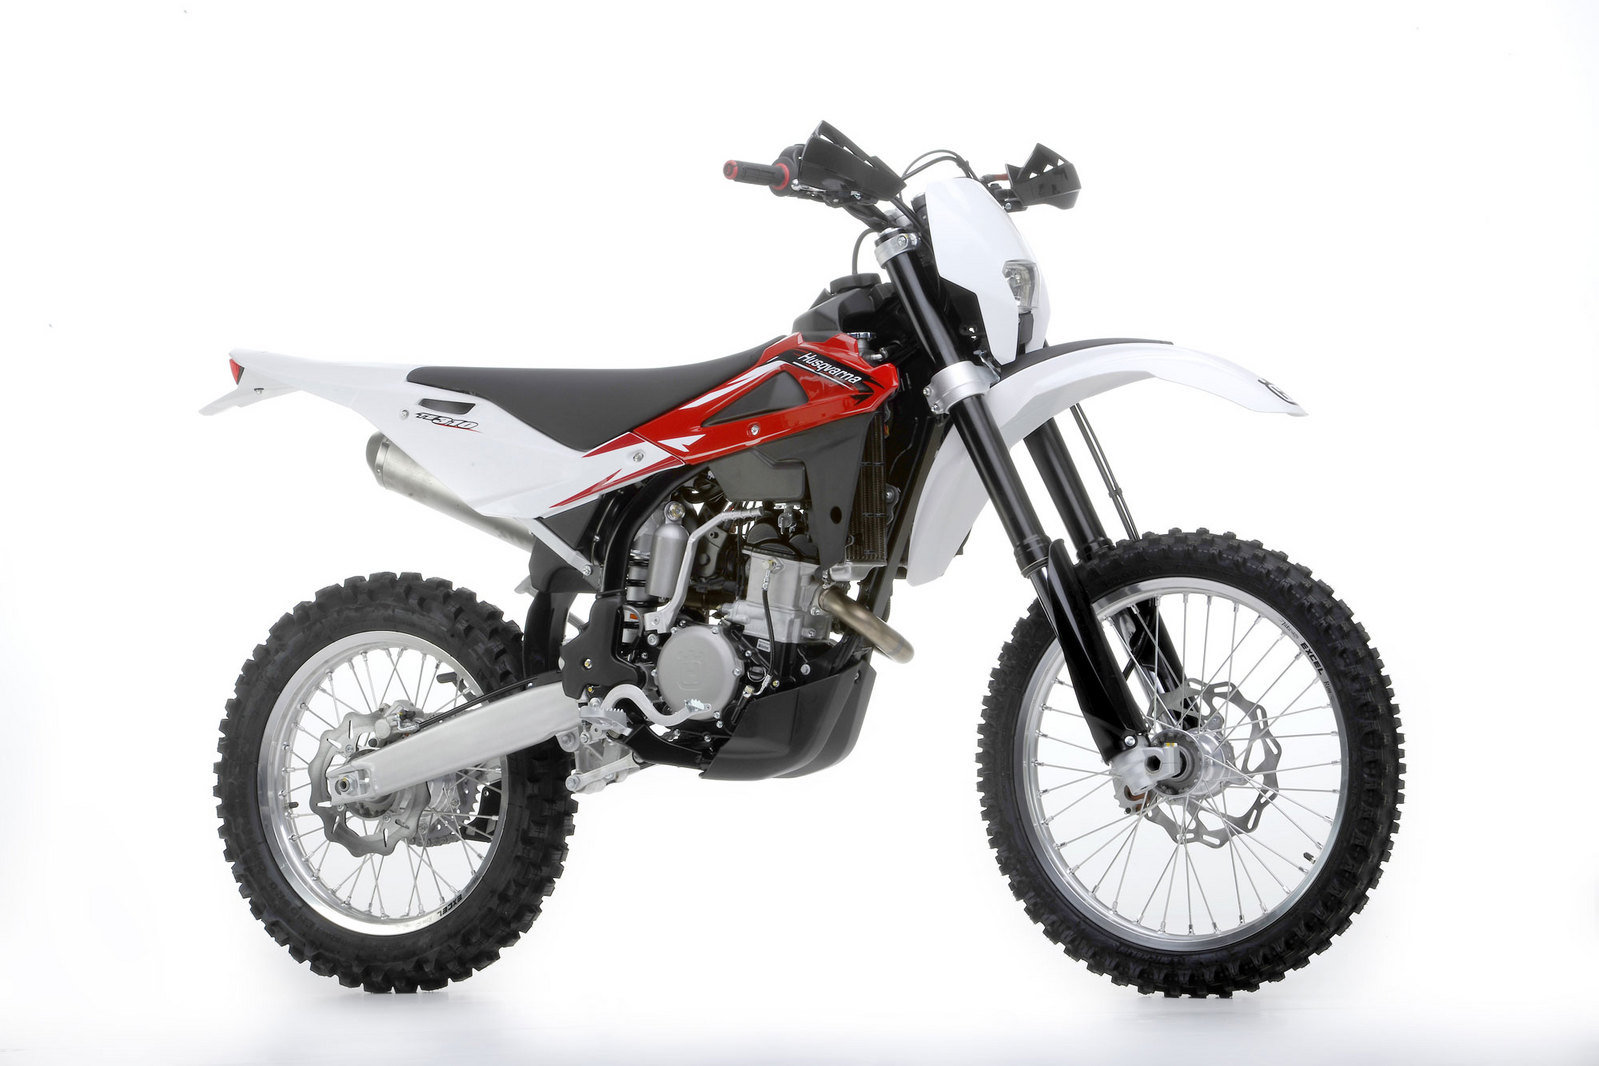 2013 husqvarna te 310 r review top speed. Black Bedroom Furniture Sets. Home Design Ideas